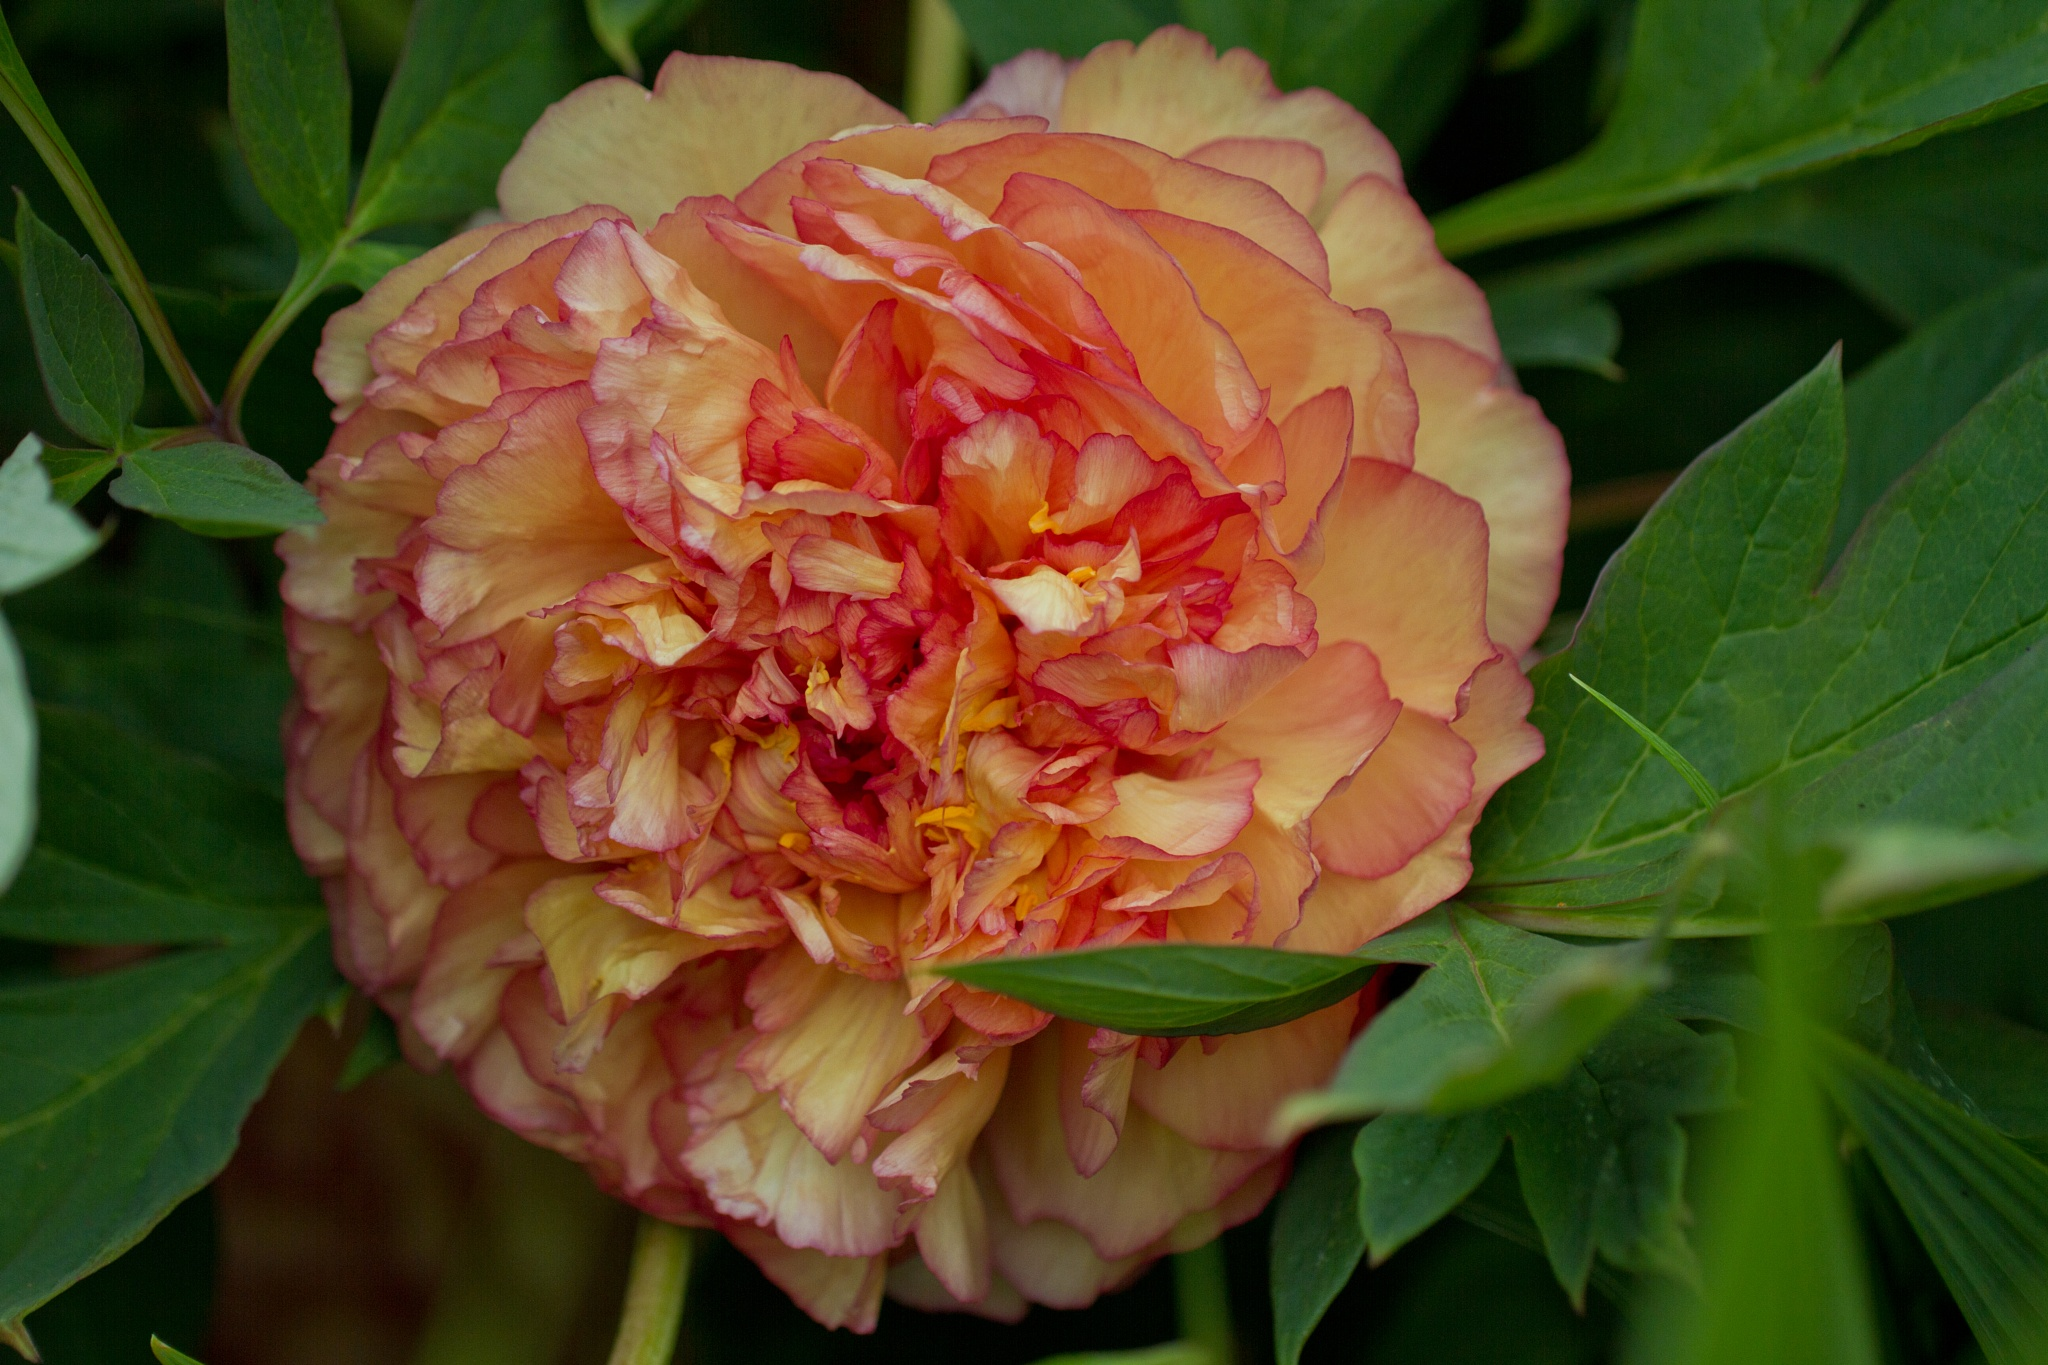 Peony by Andrew Fairclough